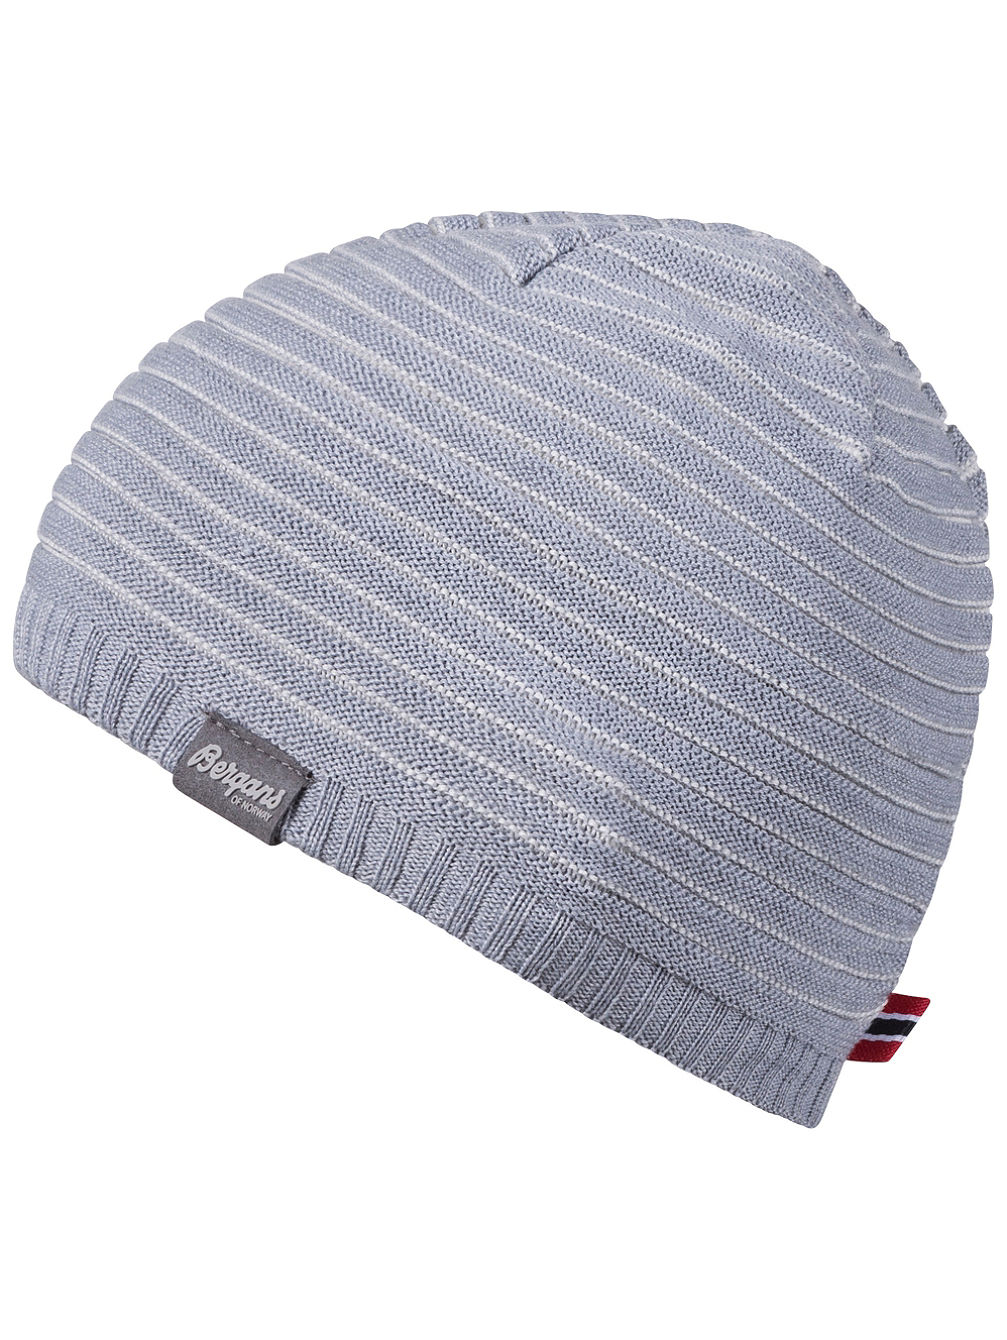 Striped Gorro